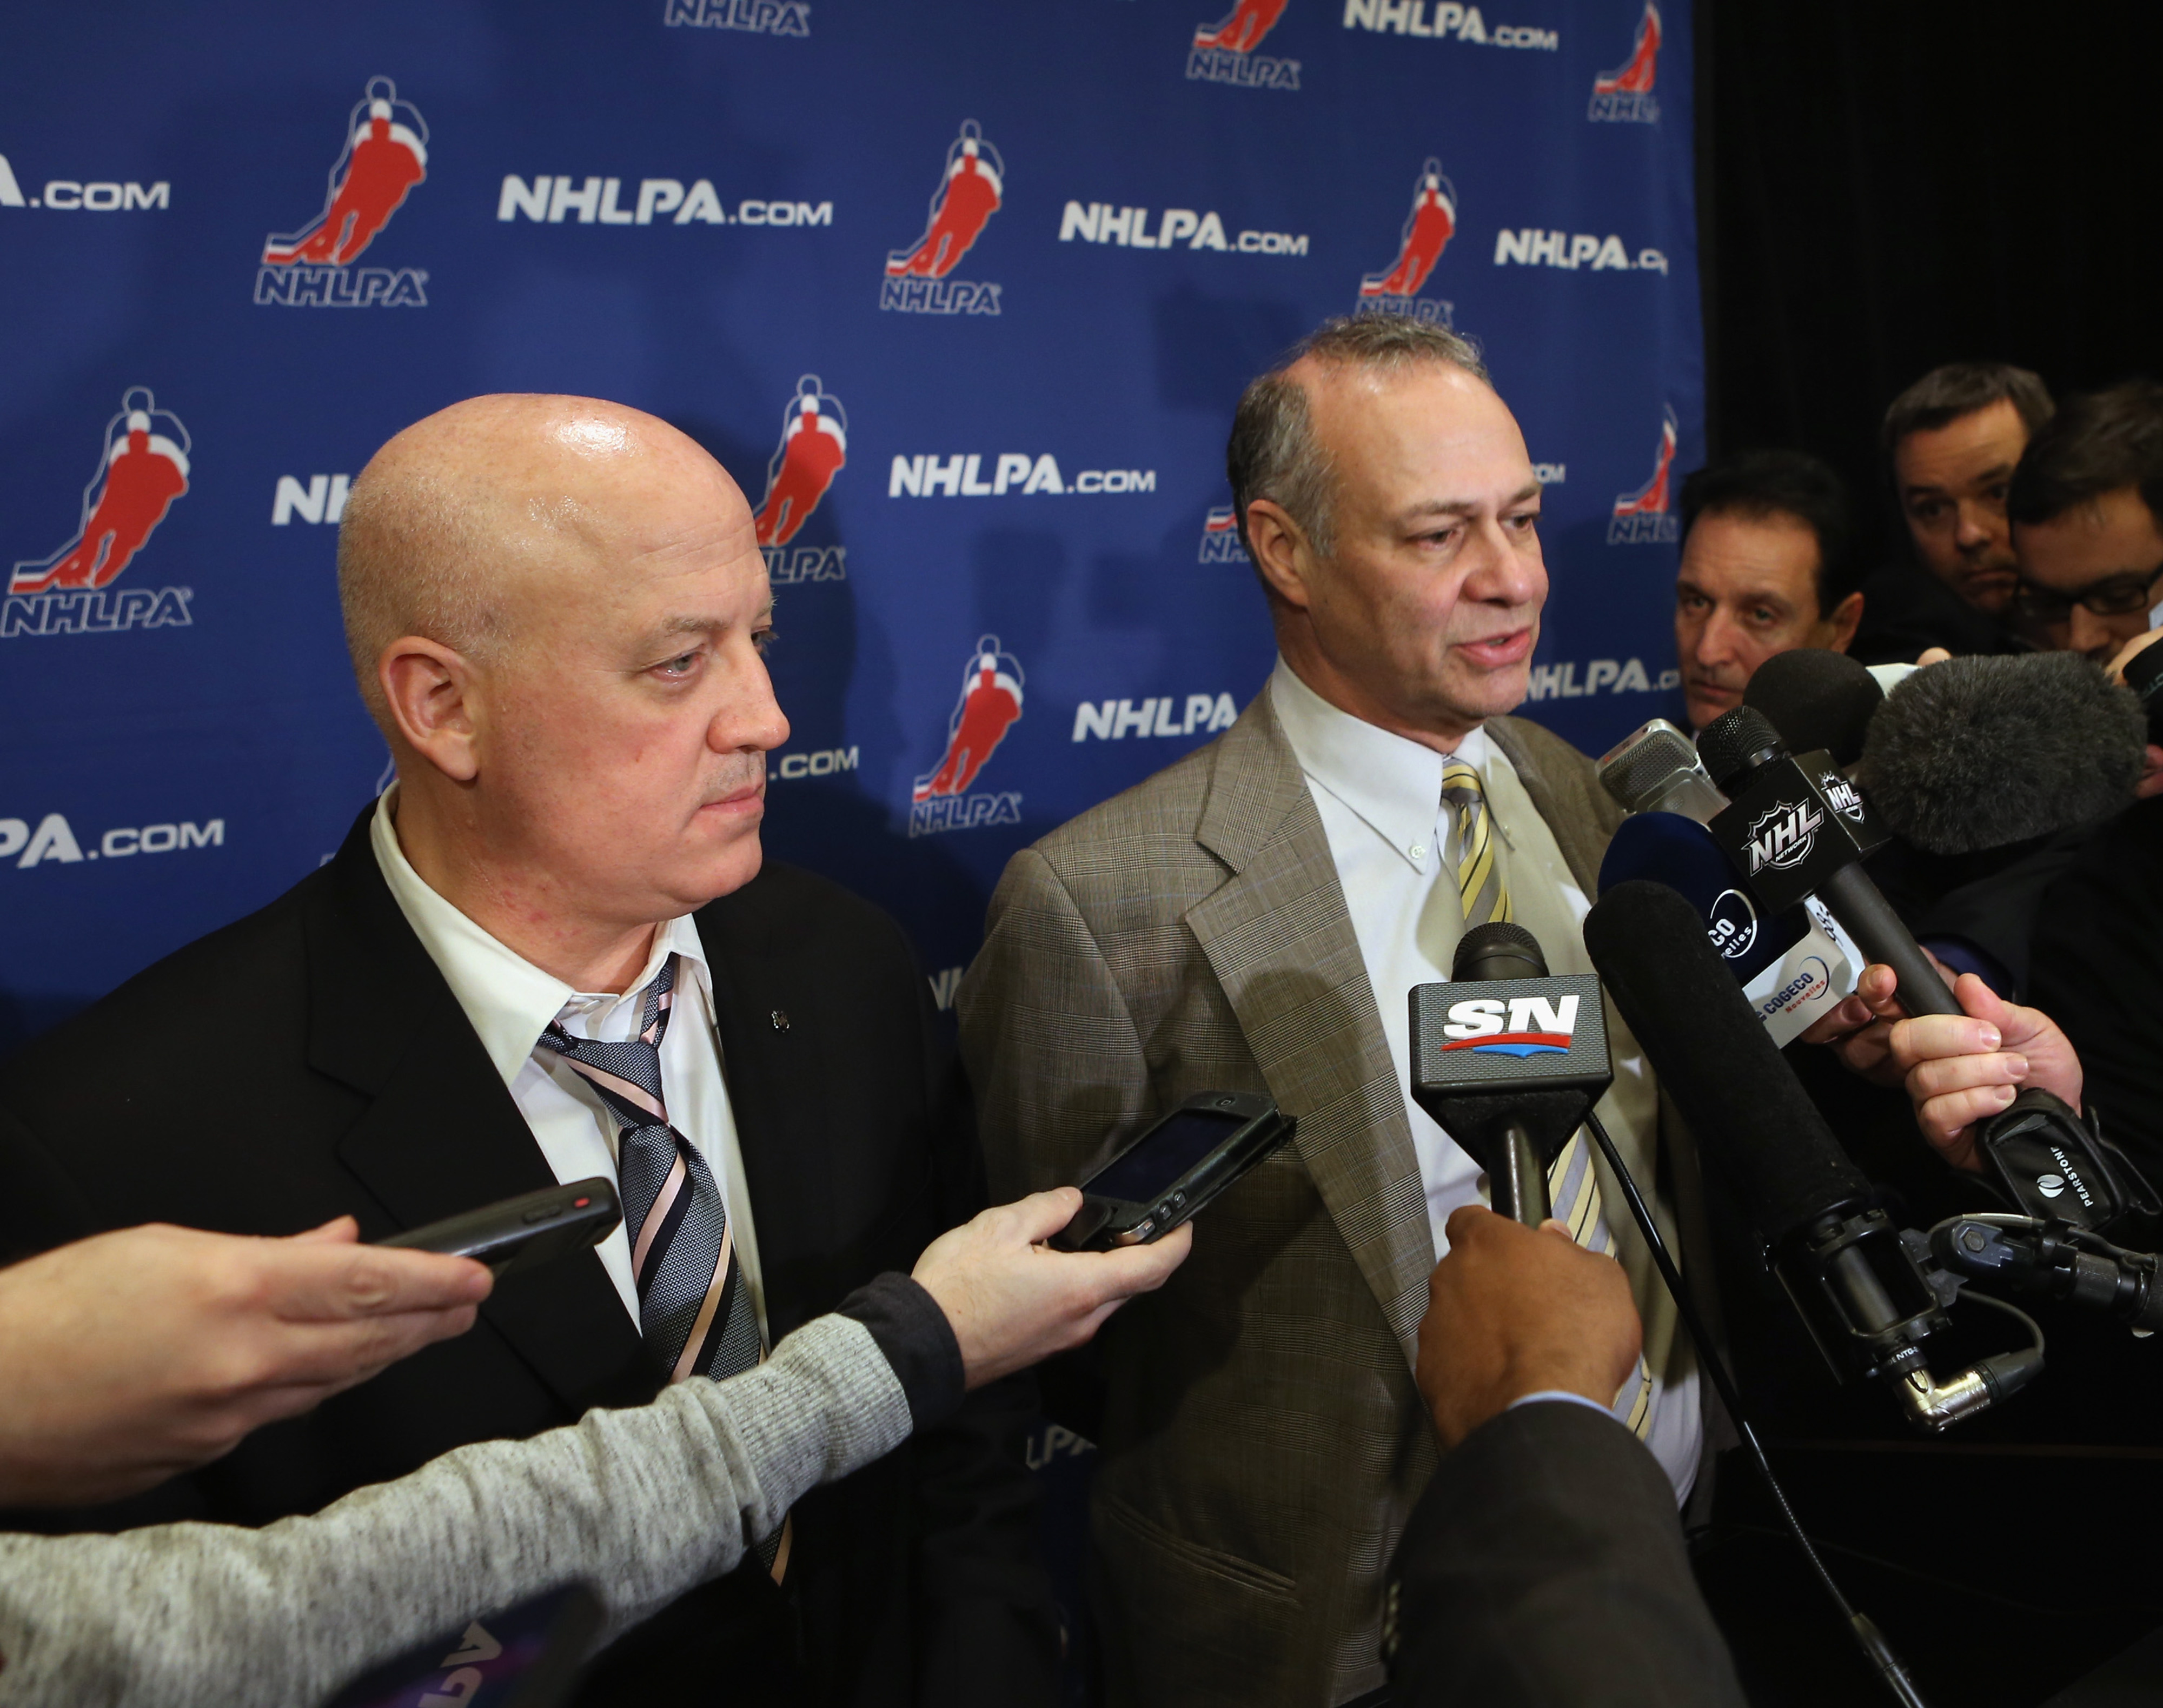 Two of the faces of the NHL lockout: NHL Deputy Commissioner Bill Daly (left) and NHLPA Special Counsel Steve Fehr (right).